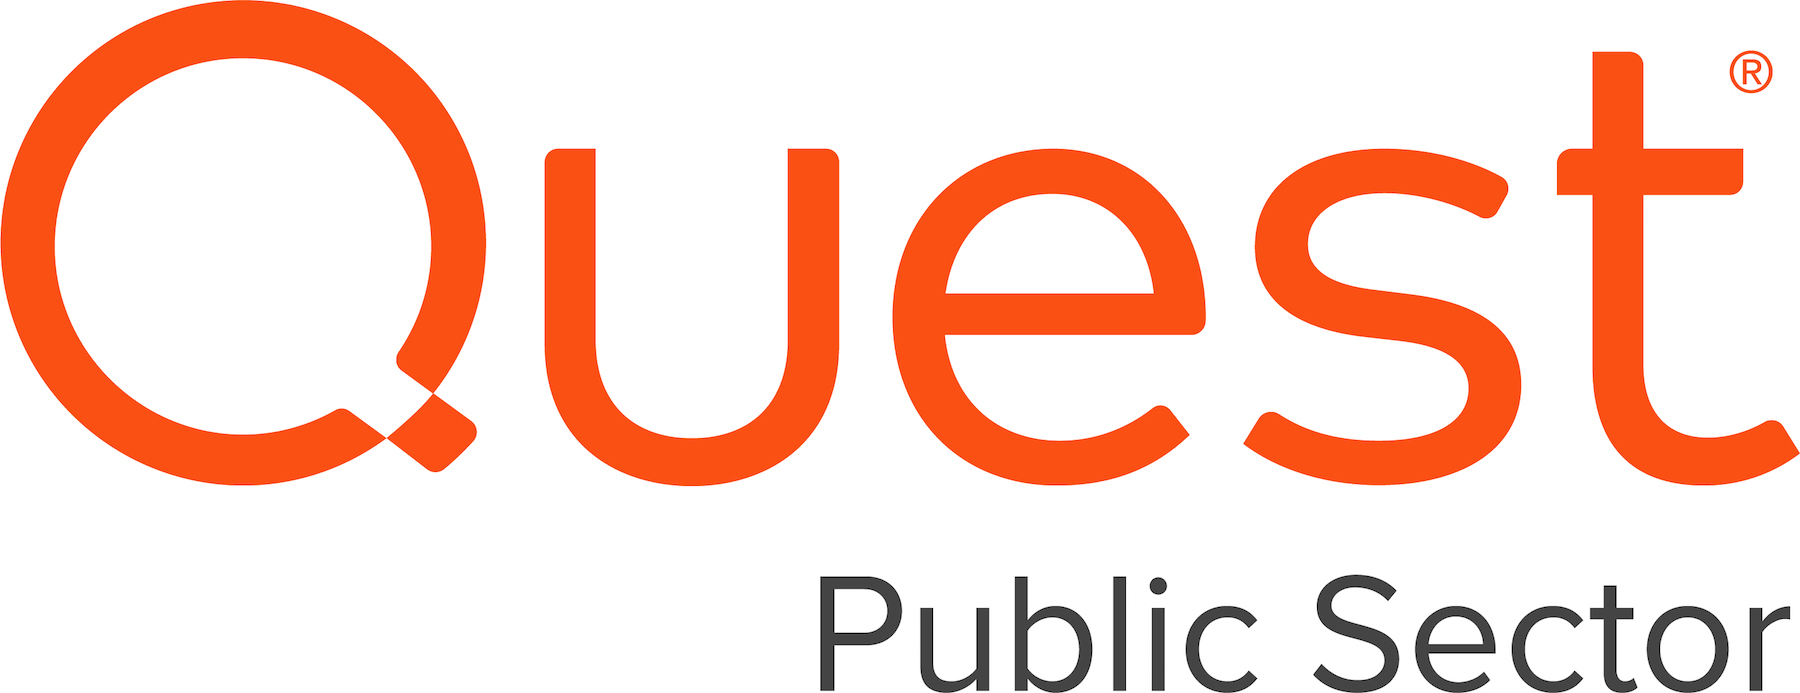 Quest Public Sector logo